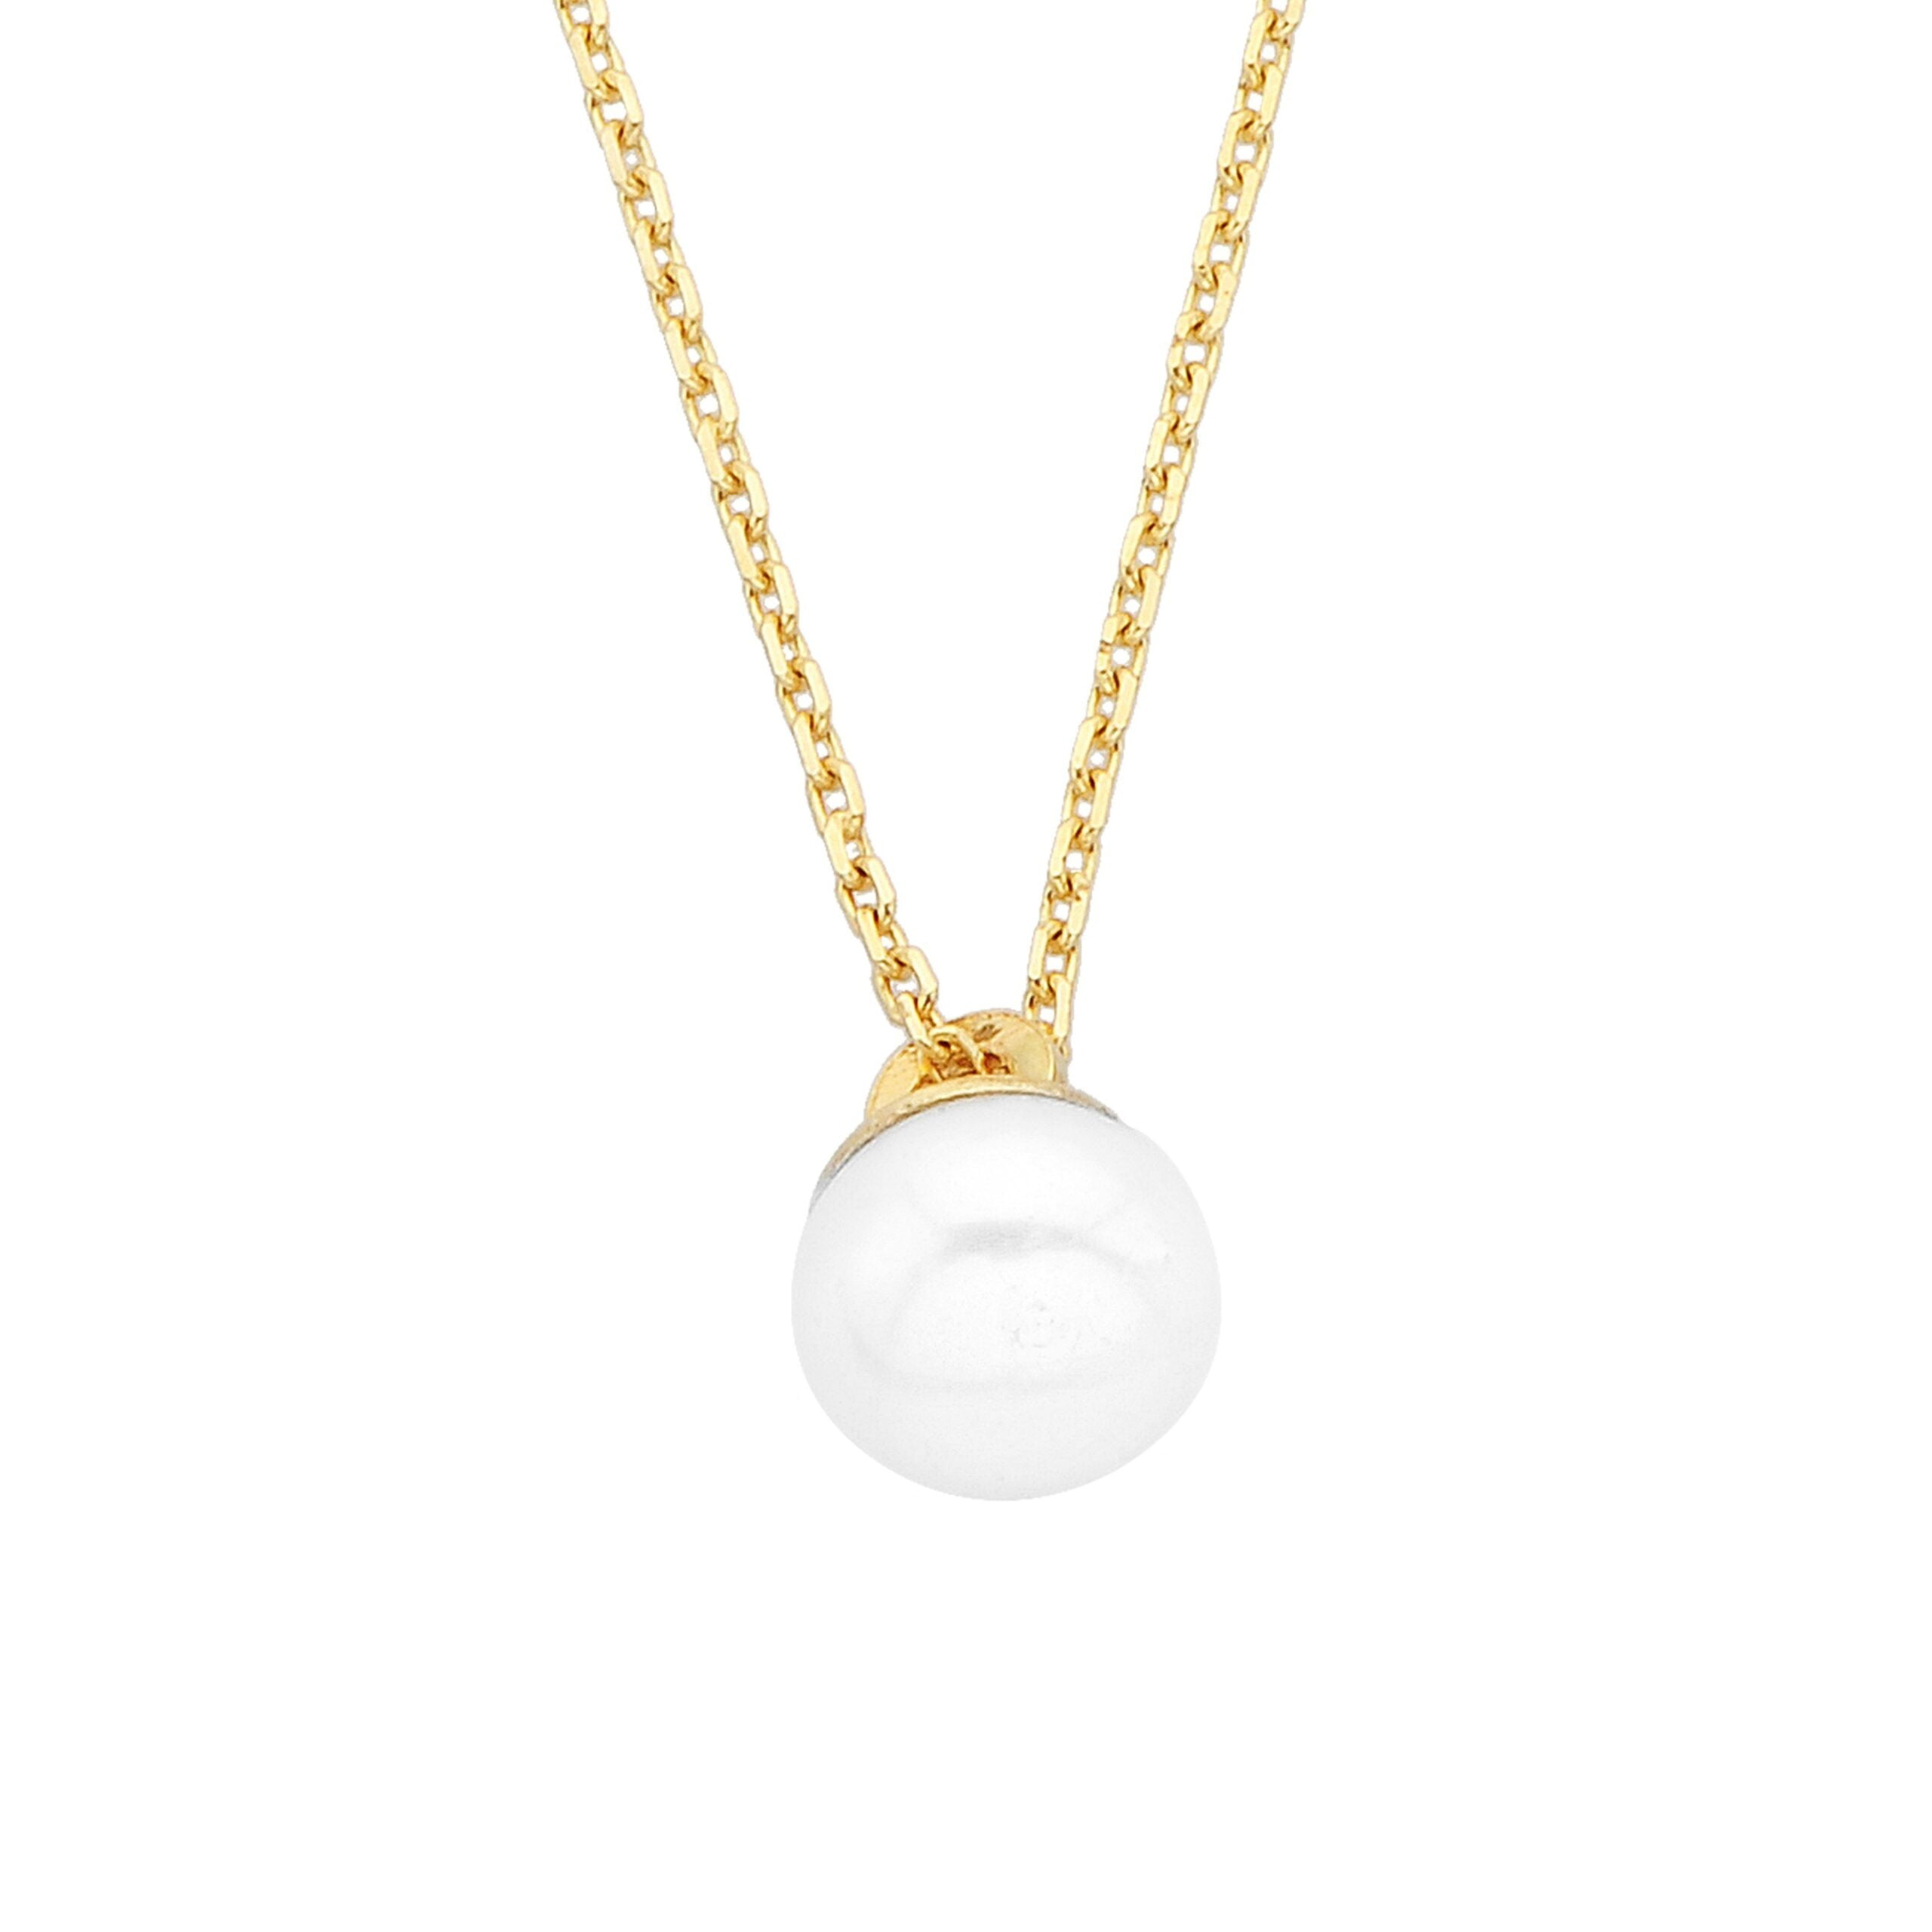 Pearl Pendant Necklace for Women 14K Real Solid Yellow Gold Charm Elegant Single 6mm Birthday Christmas Mother's day gift.jpg